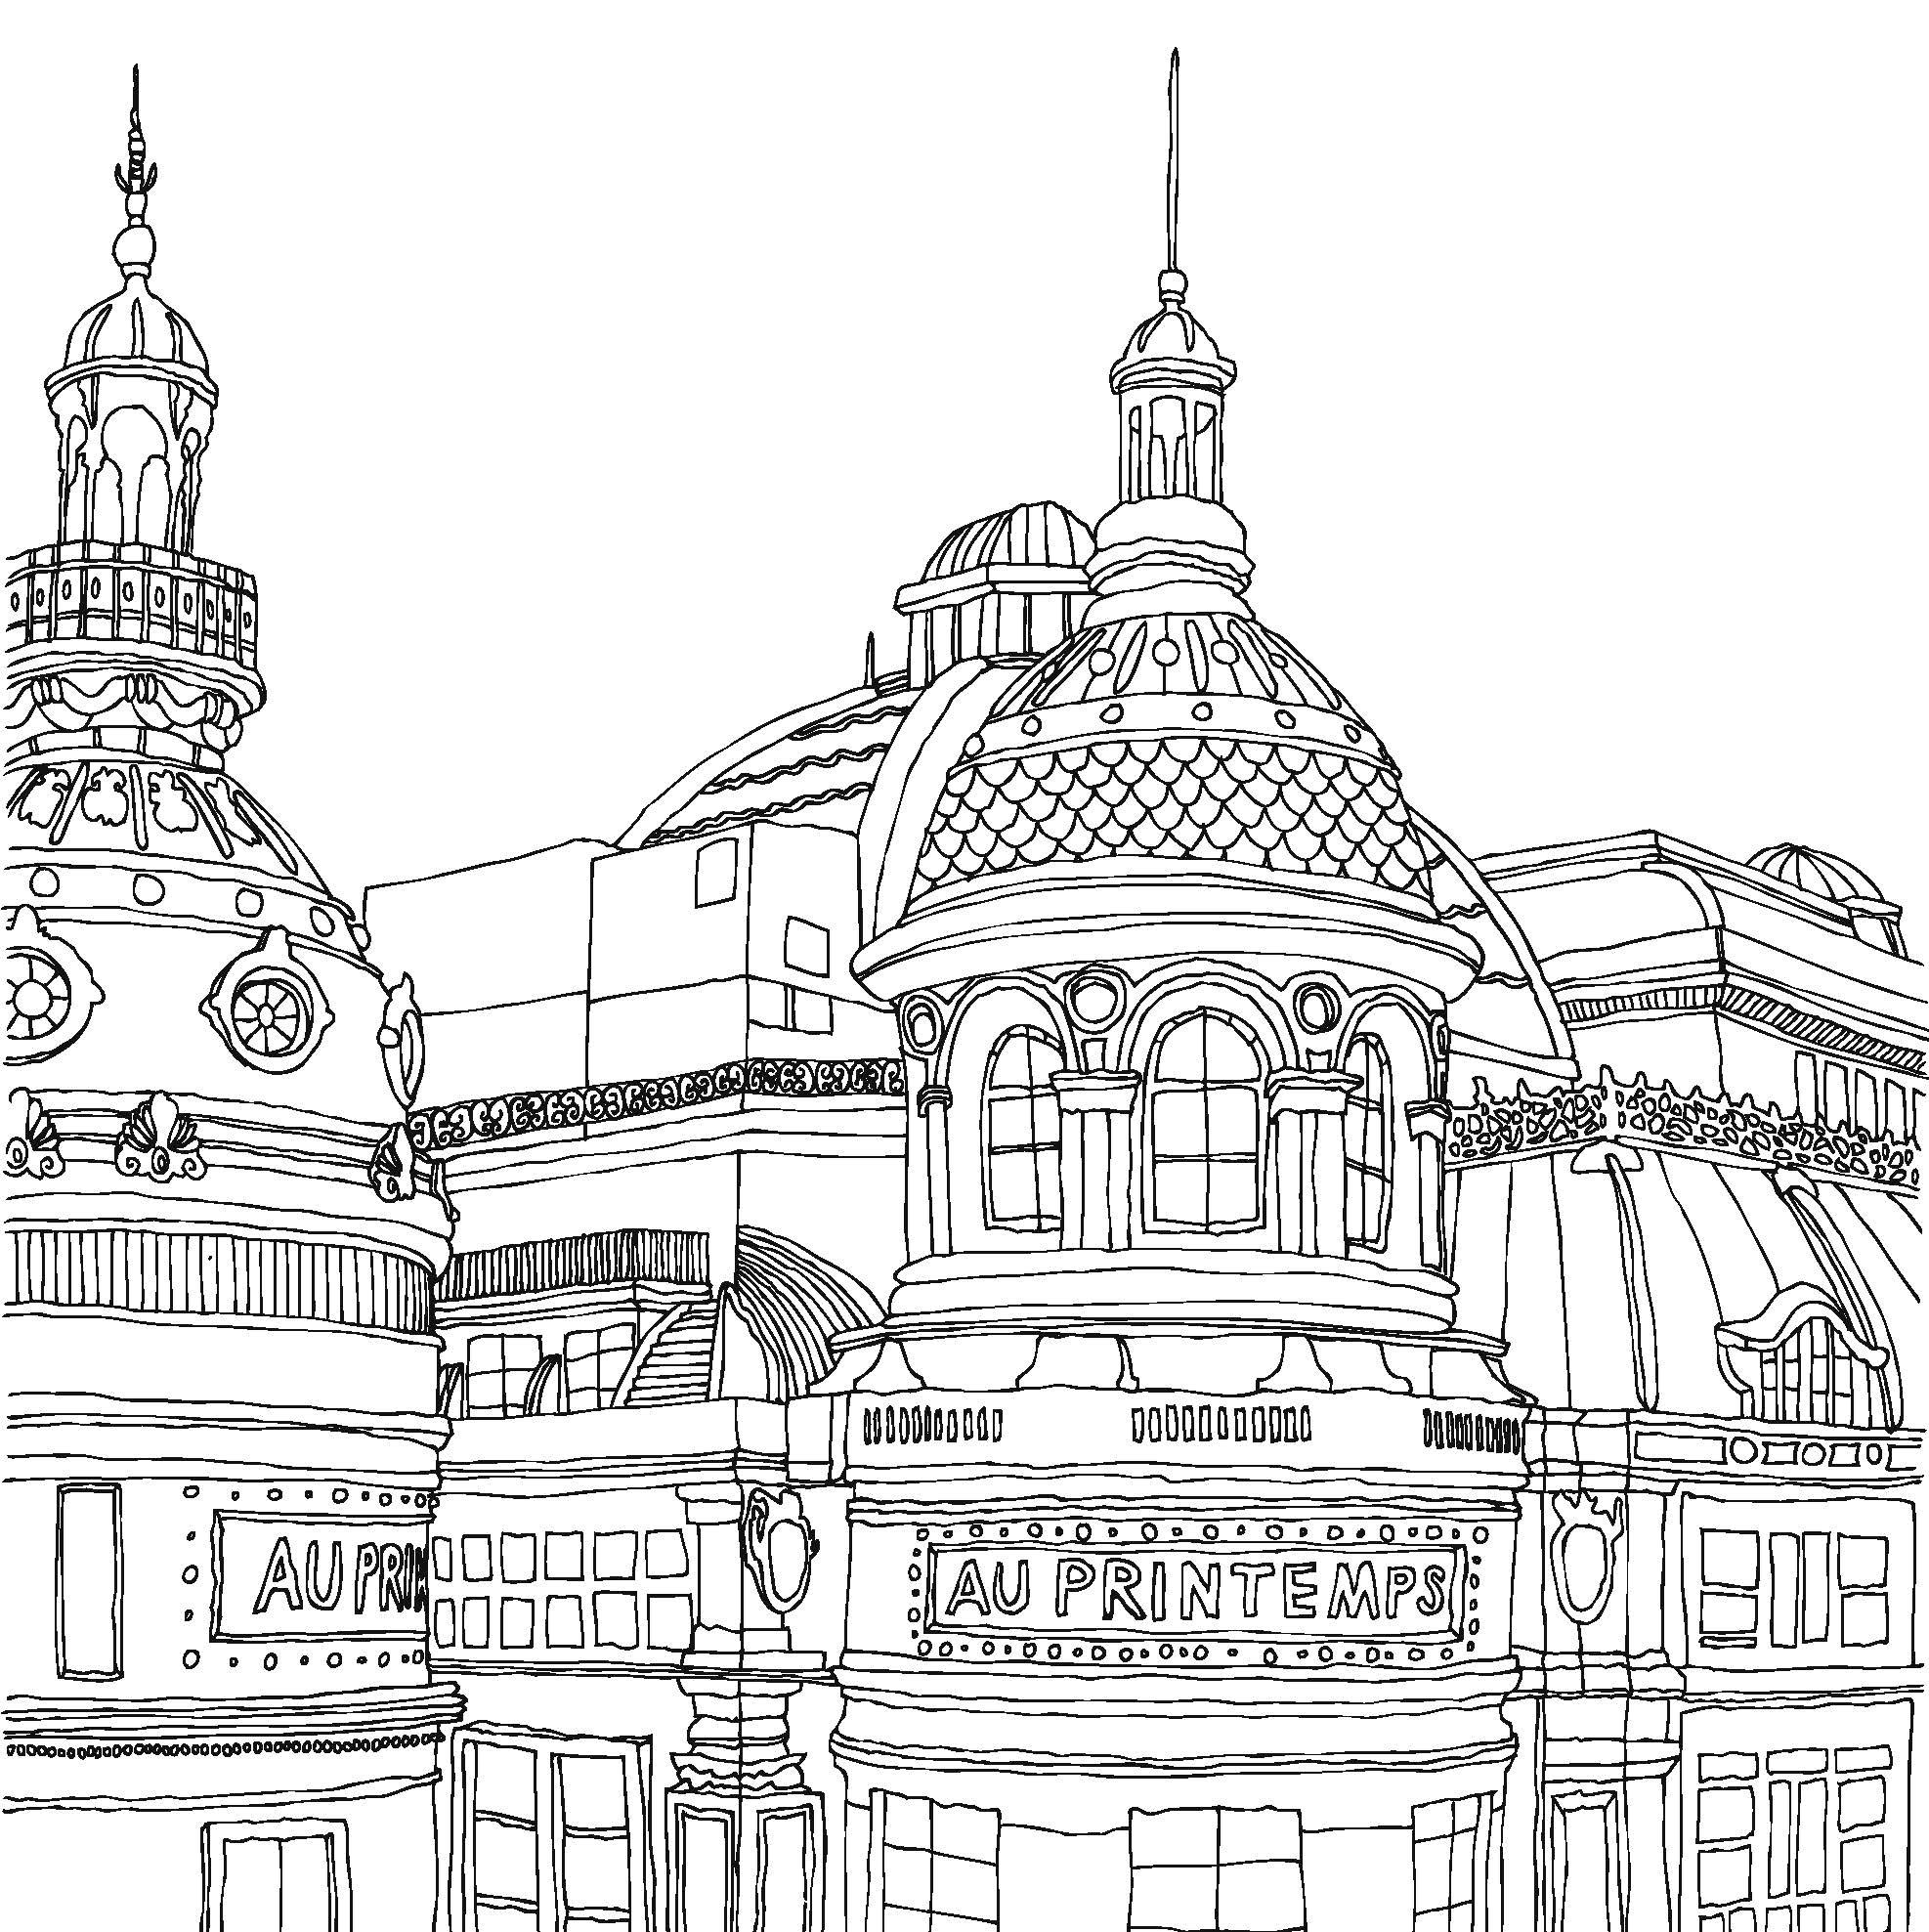 Best Website For Free Coloring Pages : City coloring pages to download and print for free